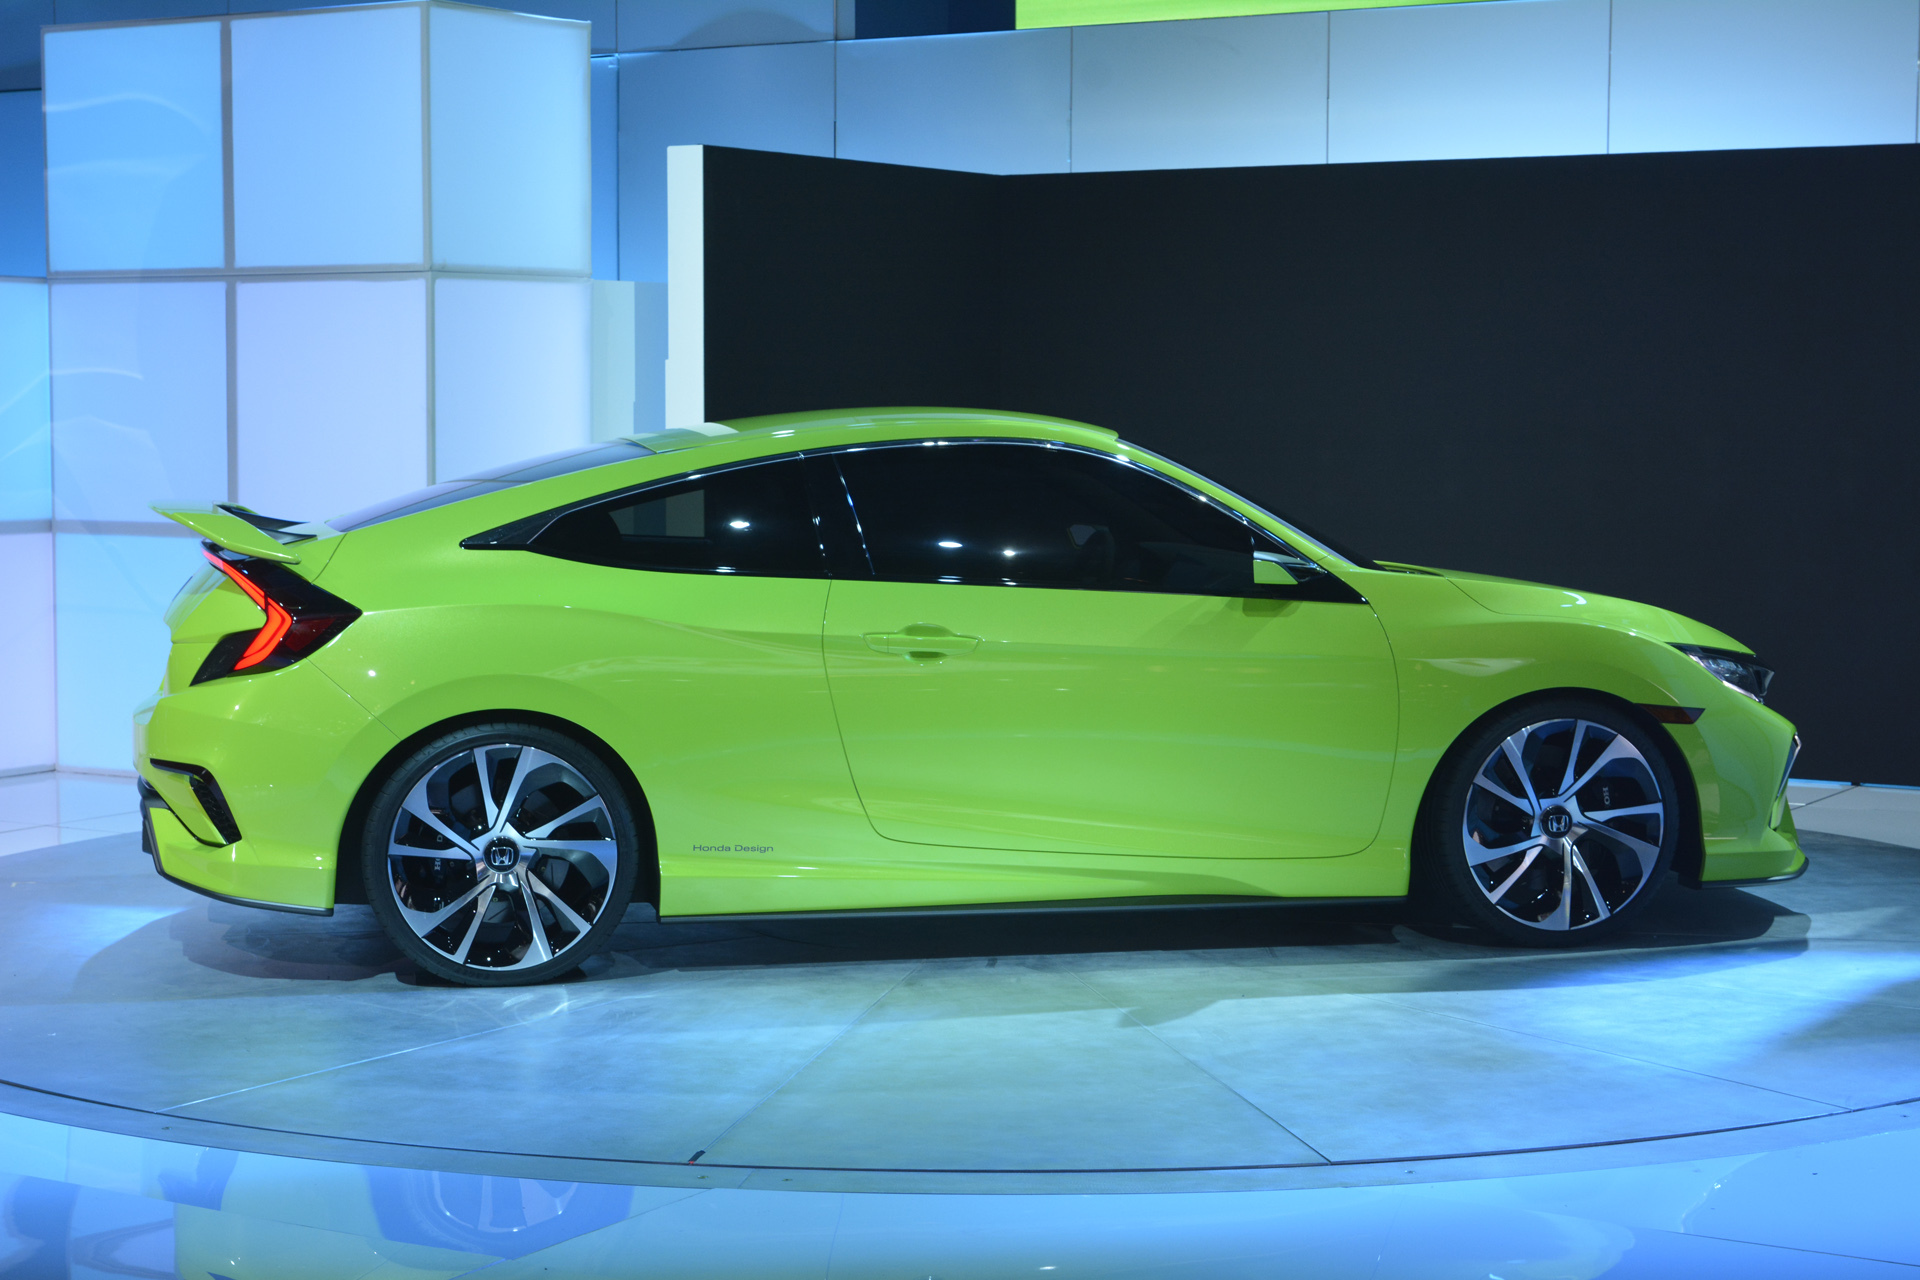 honda-civic-concept-02-1